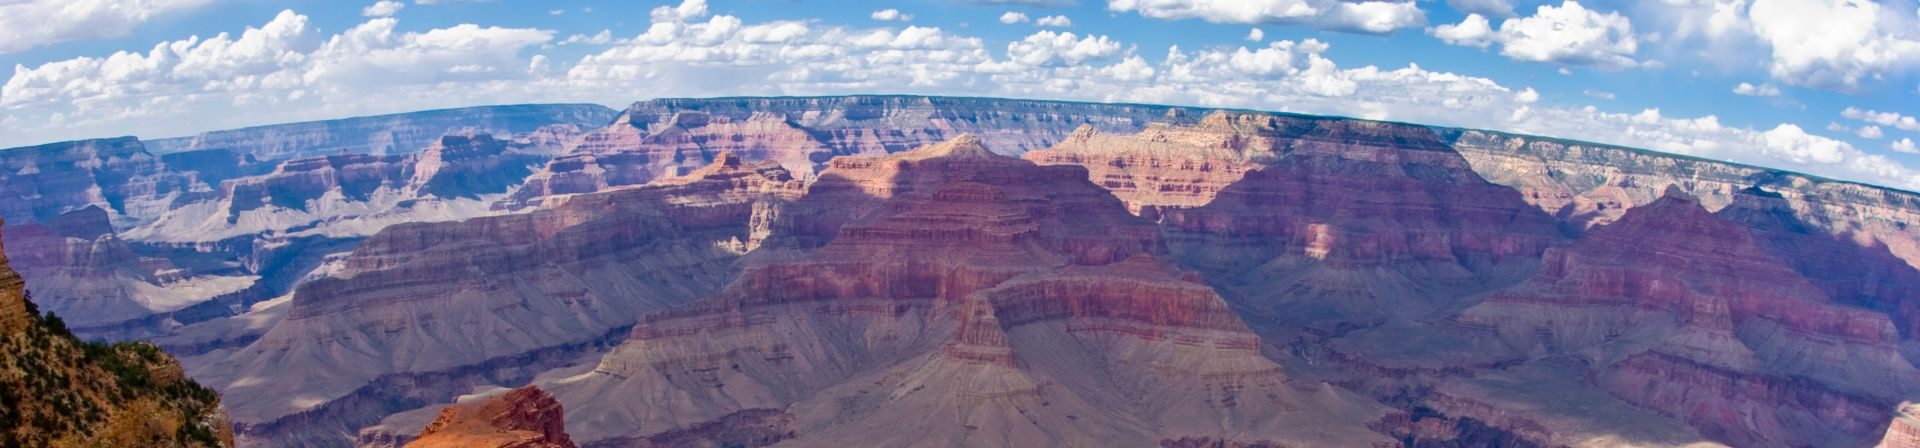 Fly from Las Vegas to Grand Canyon National Park and see the canyon laid out in front of you.